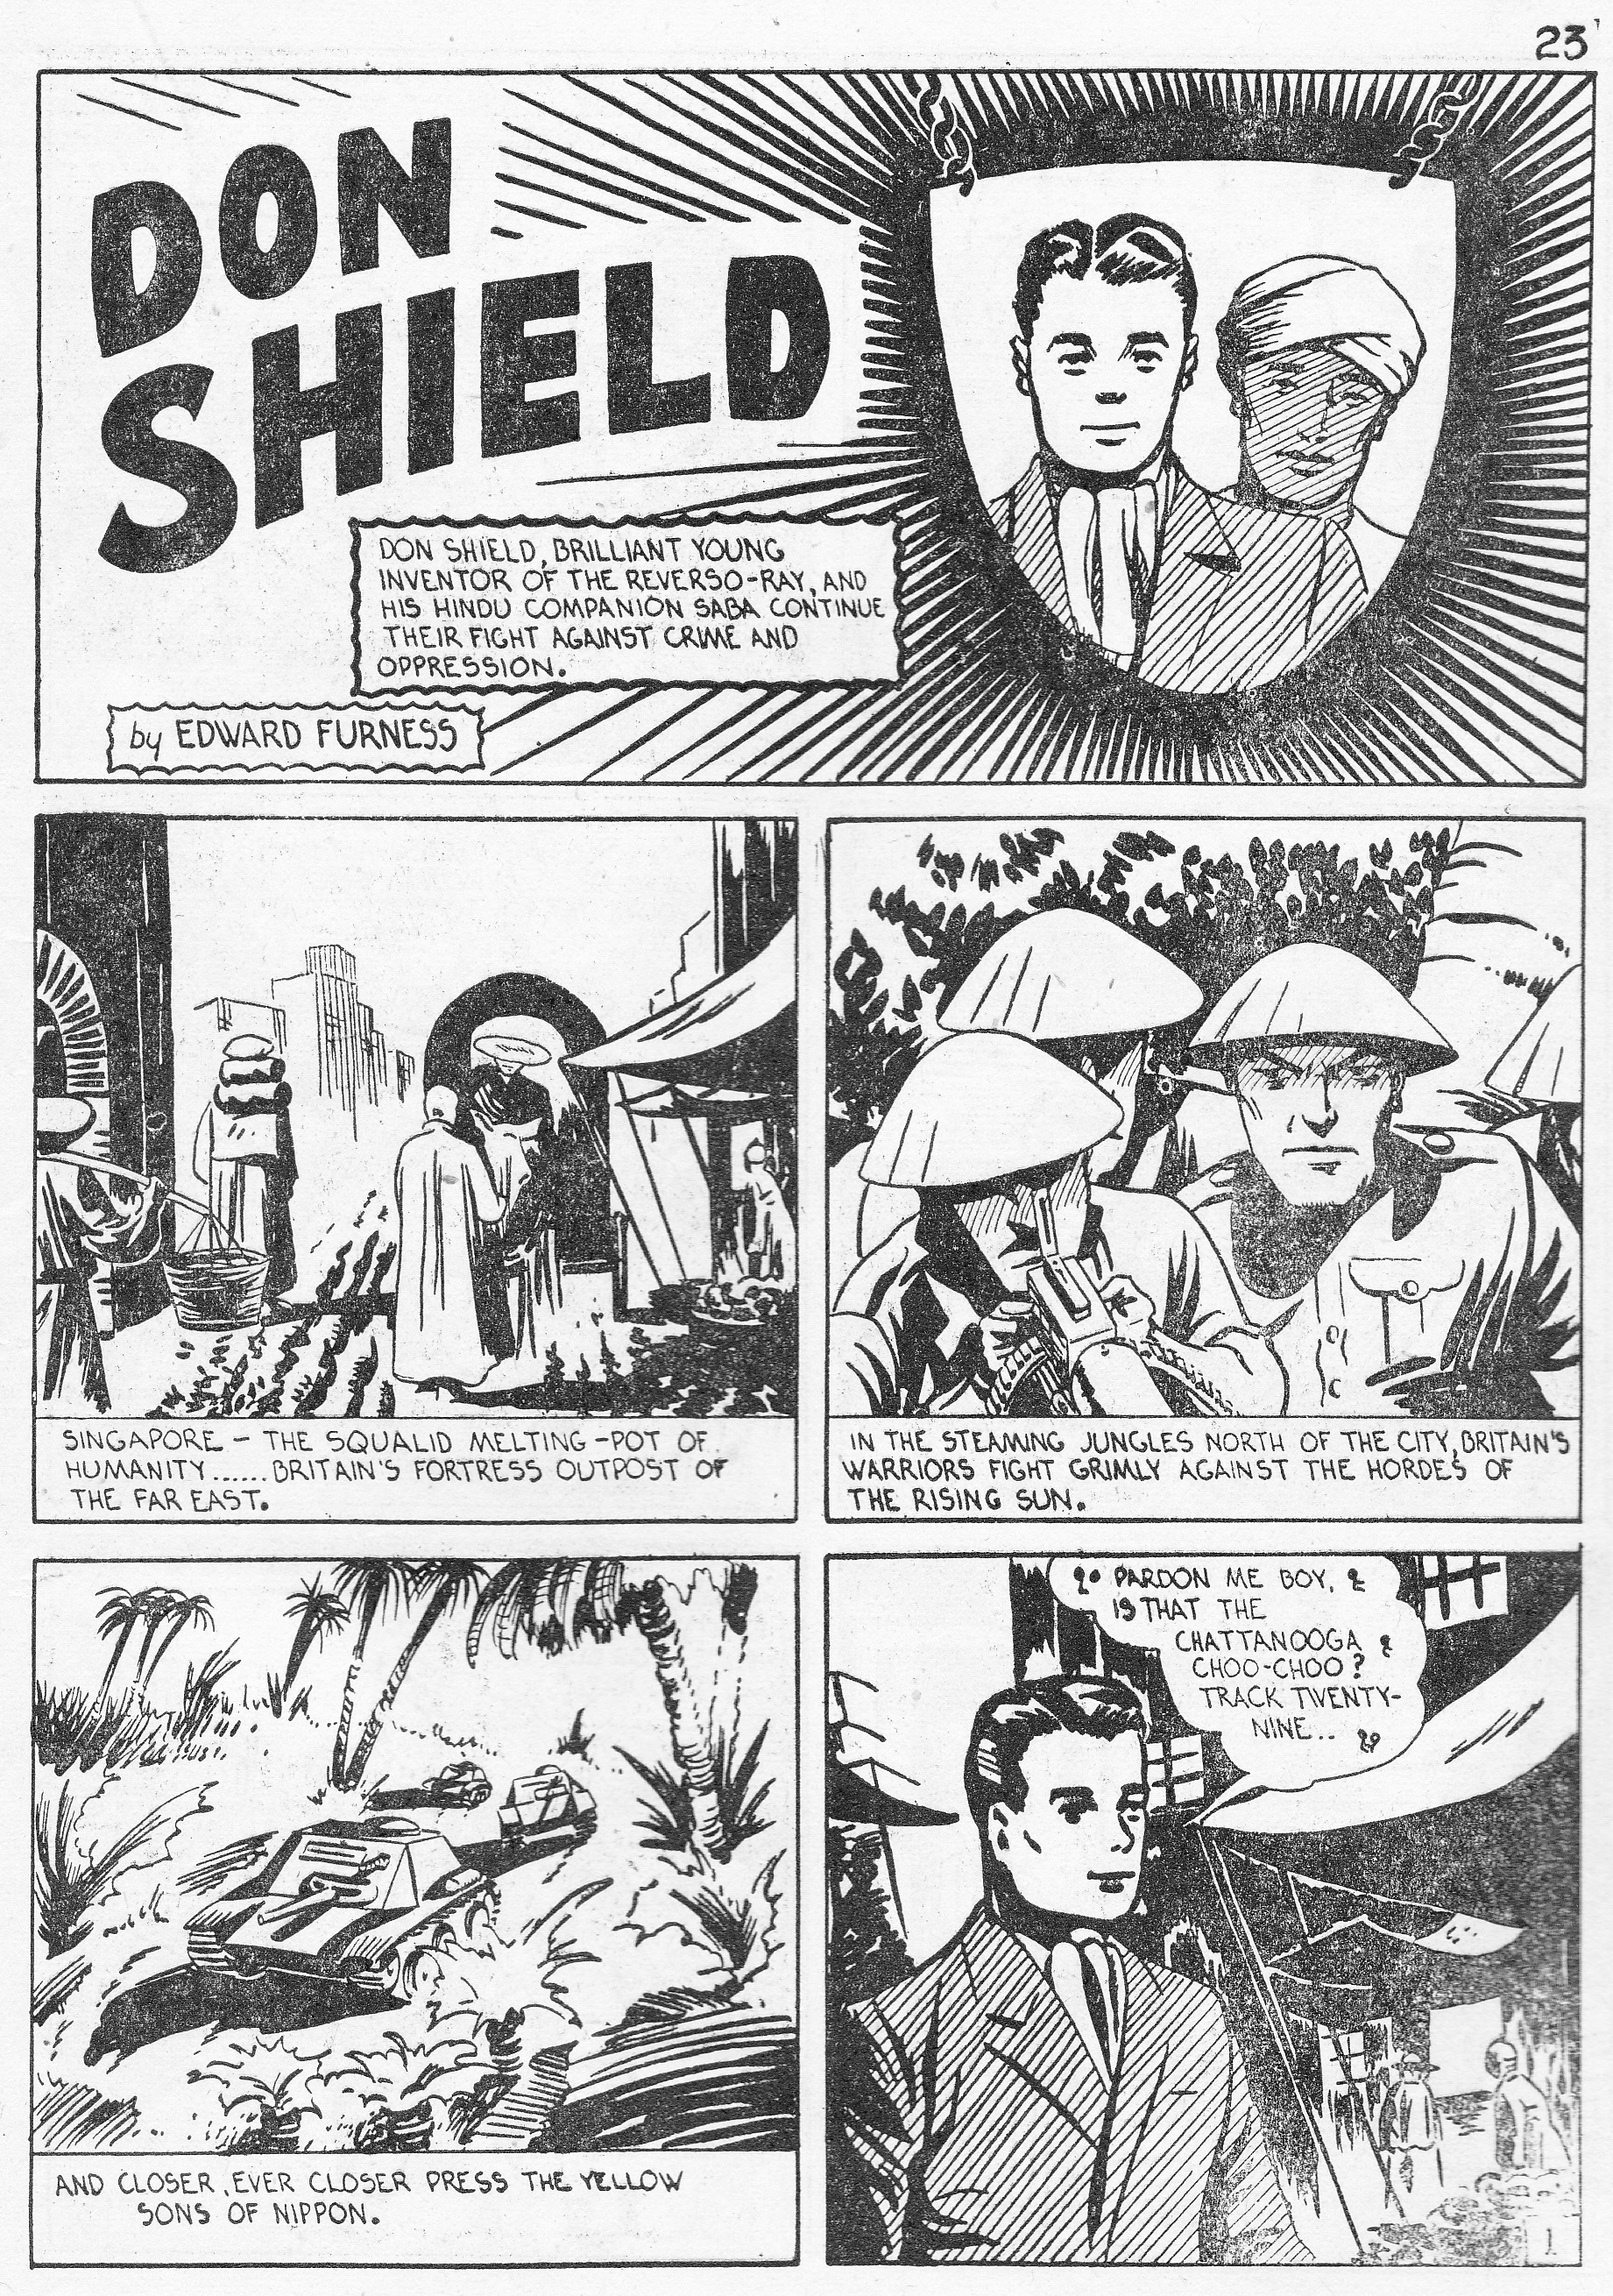 C:\Users\Robert\Documents\CARTOONING ILLUSTRATION ANIMATION\IMAGE CARTOON\IMAGE CARTOON D\DON SHEILD, Grand Slam Comics, 1-5, April 1942, 23.jpg